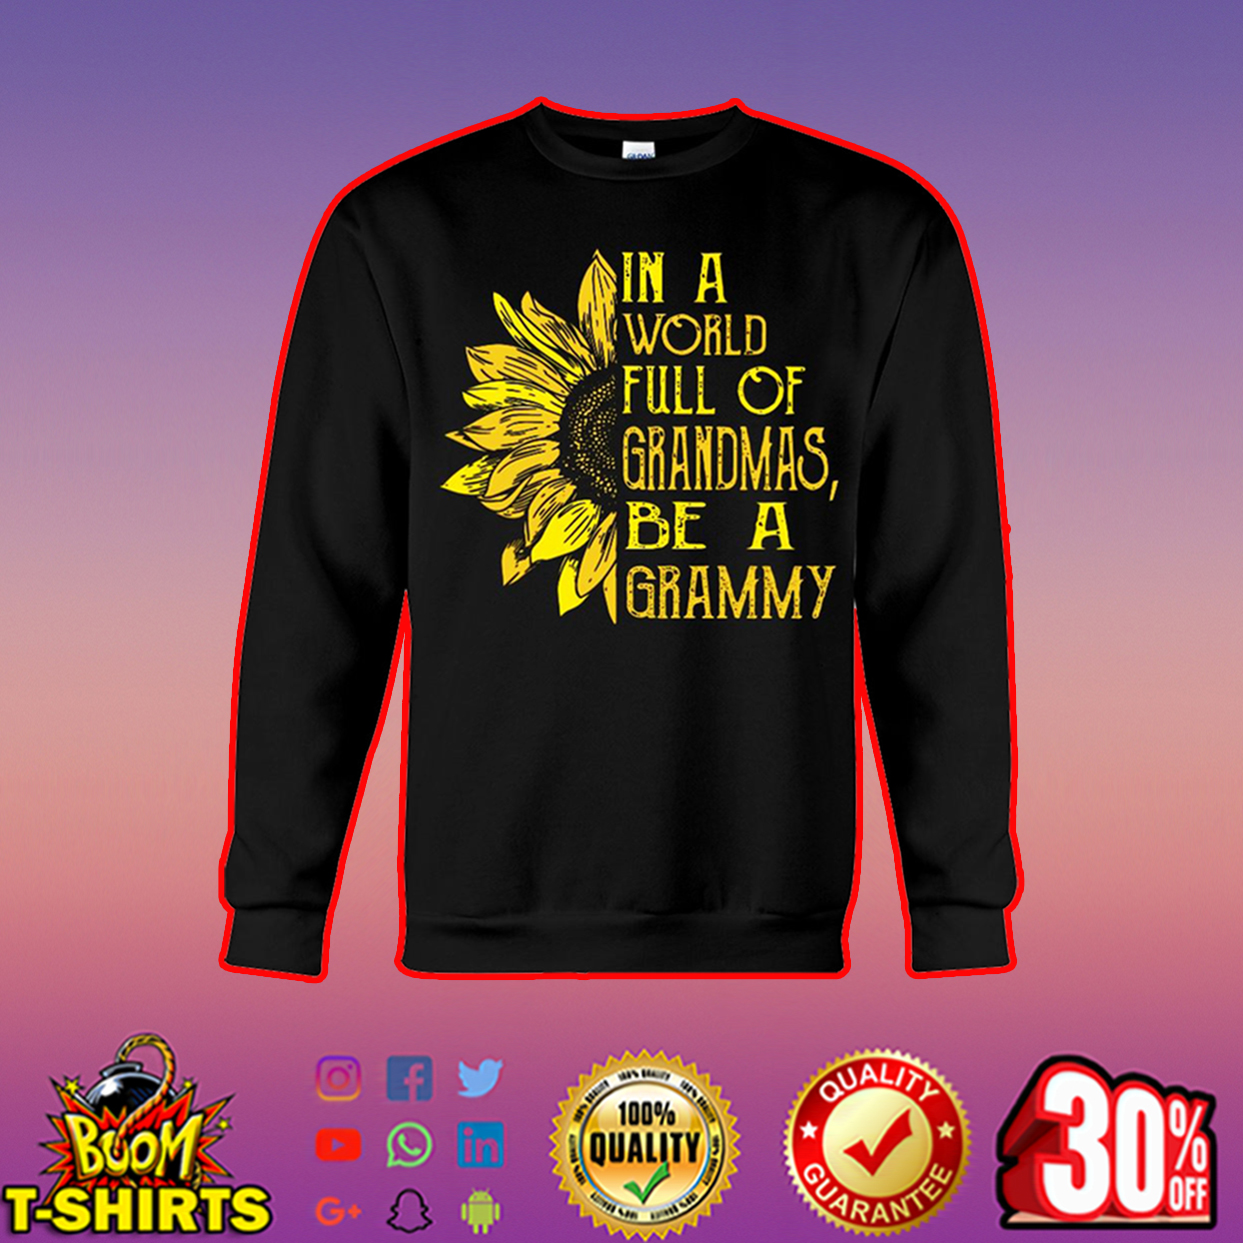 Sunflower in a world full of grandmas be a grammy shirt, hooded sweatshirt - sweatshirt